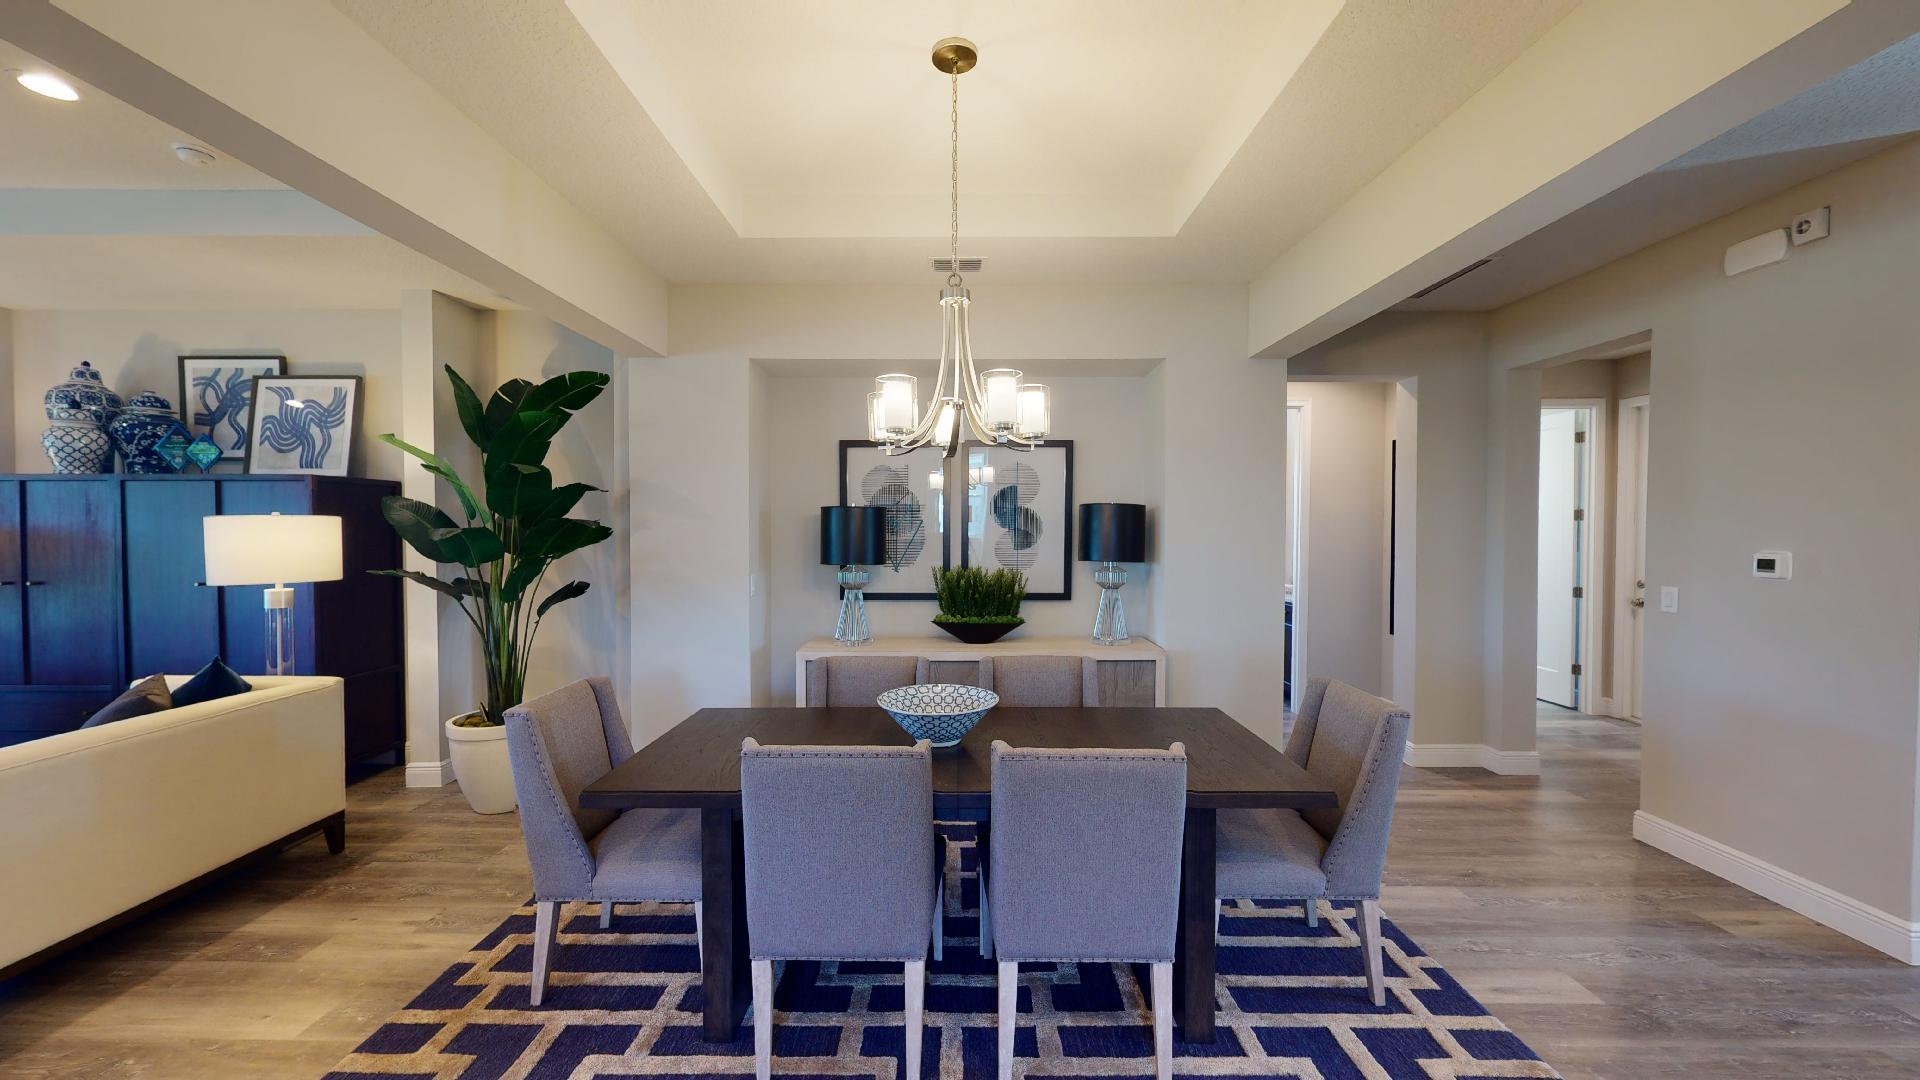 Living Area featured in the Linburn II By Regal Park Homes in Orlando, FL